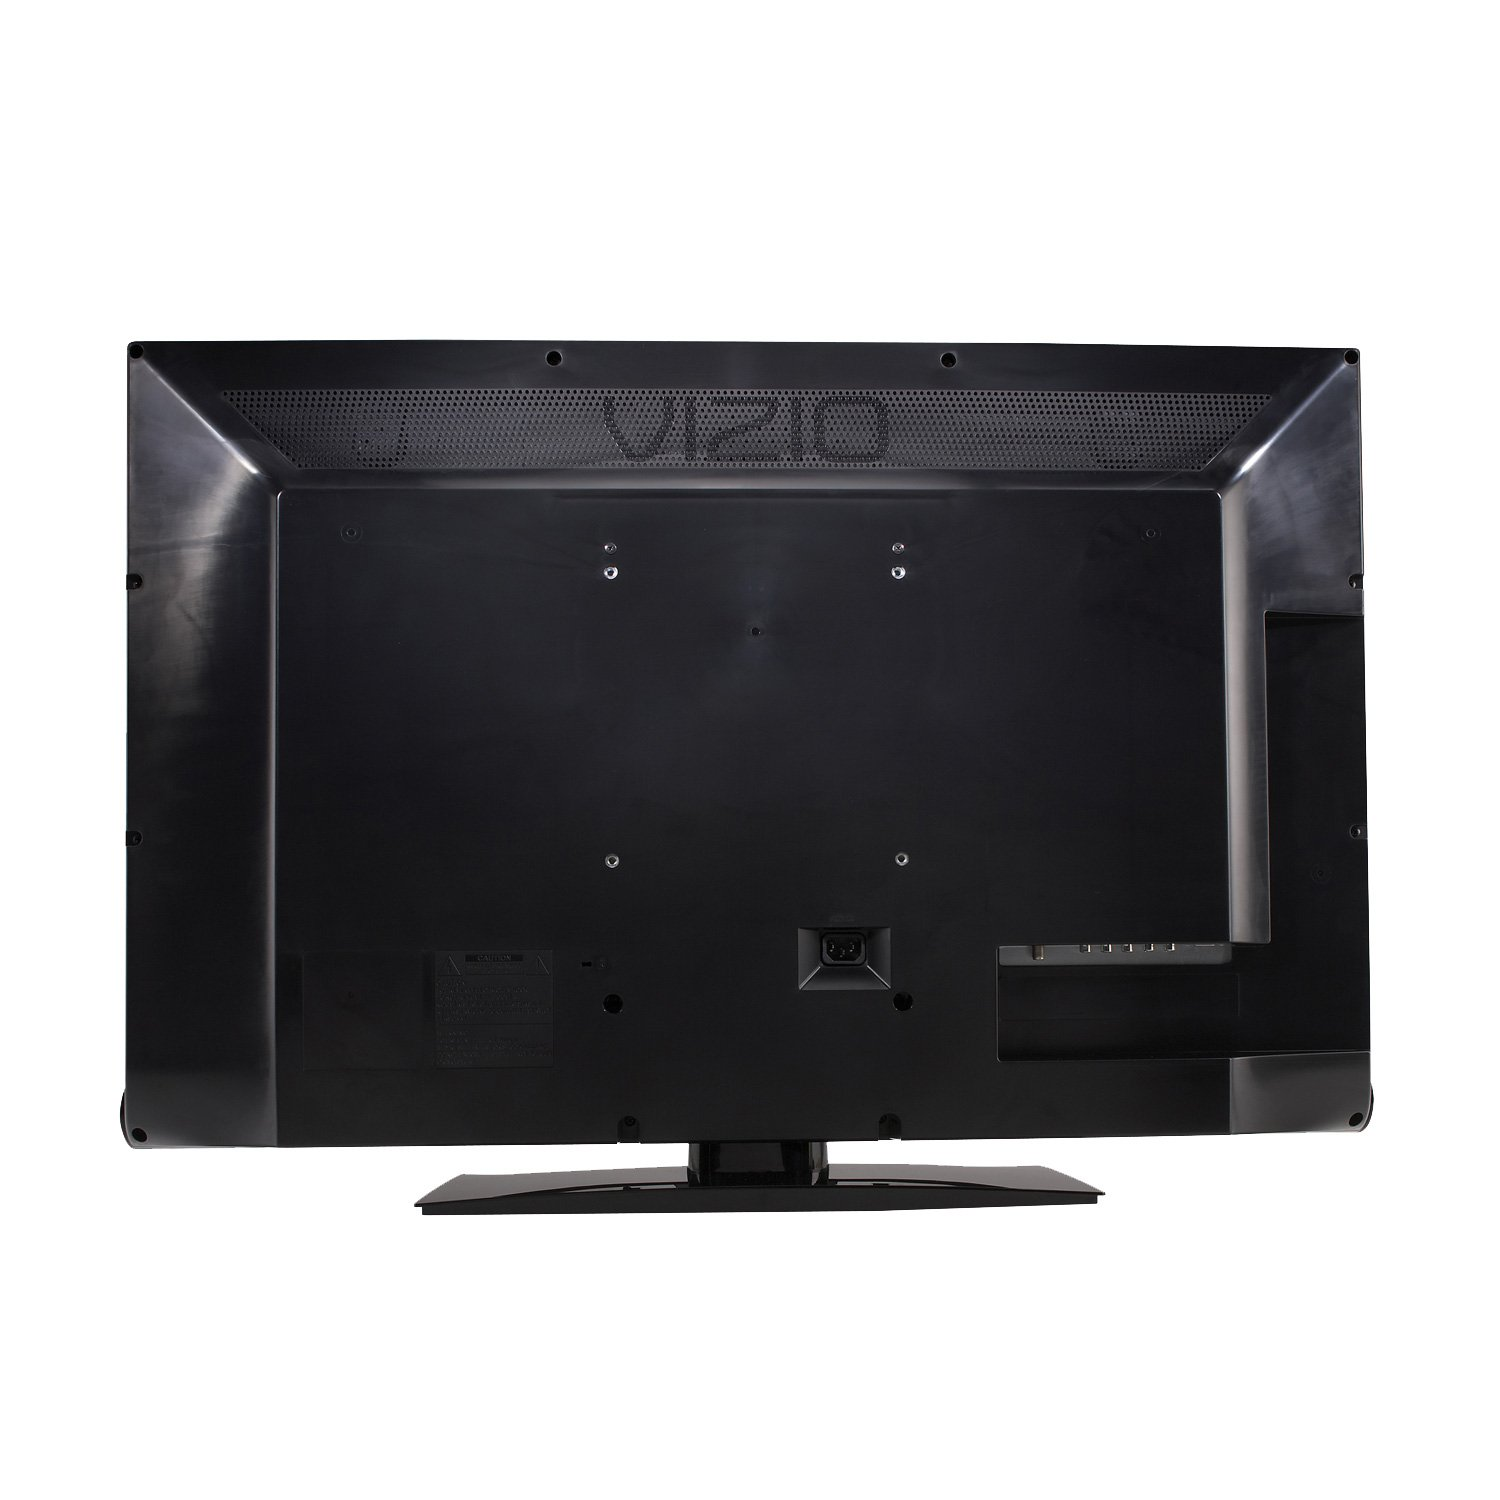 amazon com vizio e550va 55 inch 1080p 120 hz lcd hdtv black rh amazon com Vizio Repair Manuals LCD Screen On Vizio TV